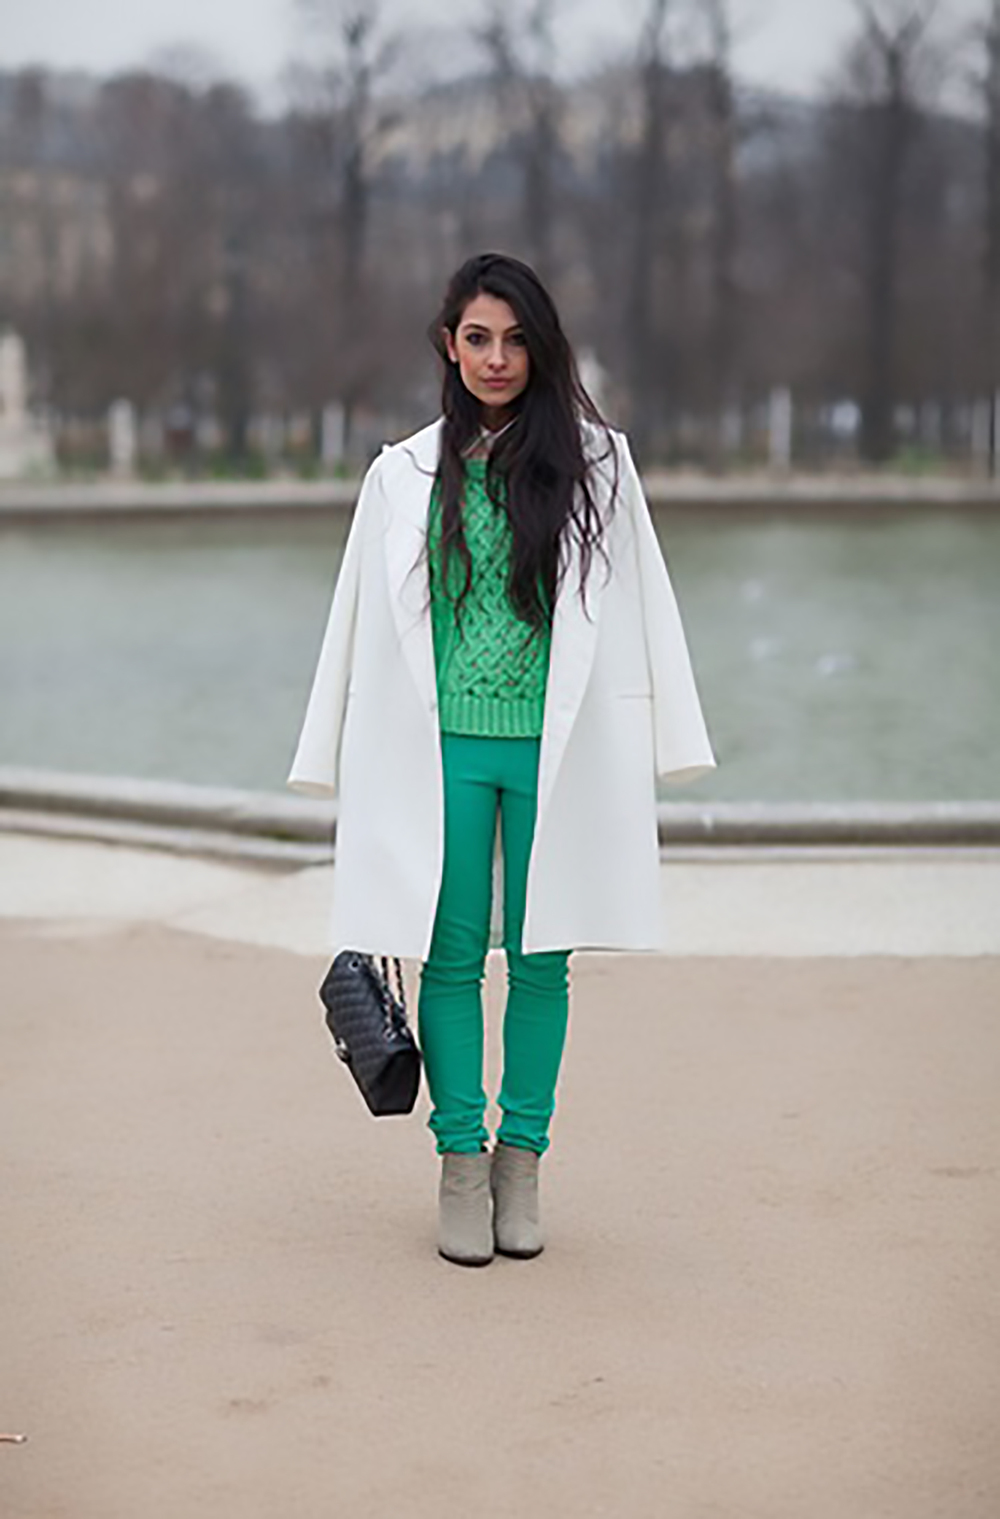 harpers bazaar paris street style 2013 150 of 192 jackets over shoulders 1500.jpg